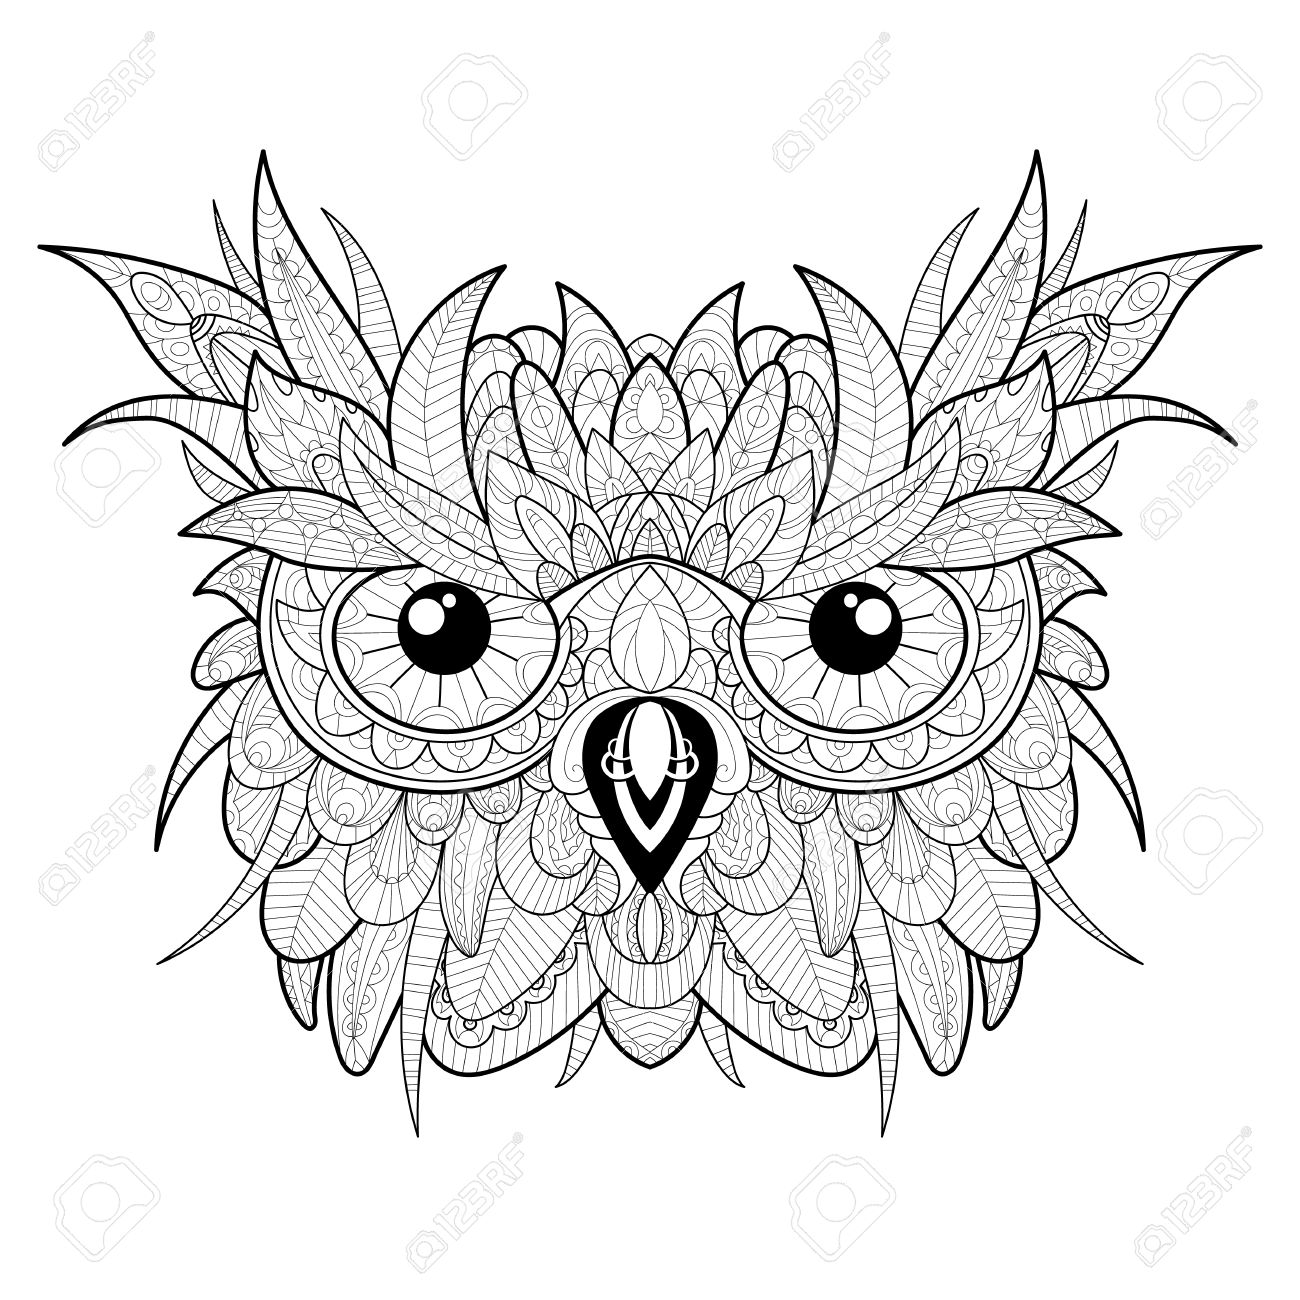 Hand Drawn High Detailed Owl Head For Adult Coloring Page Stock Vector